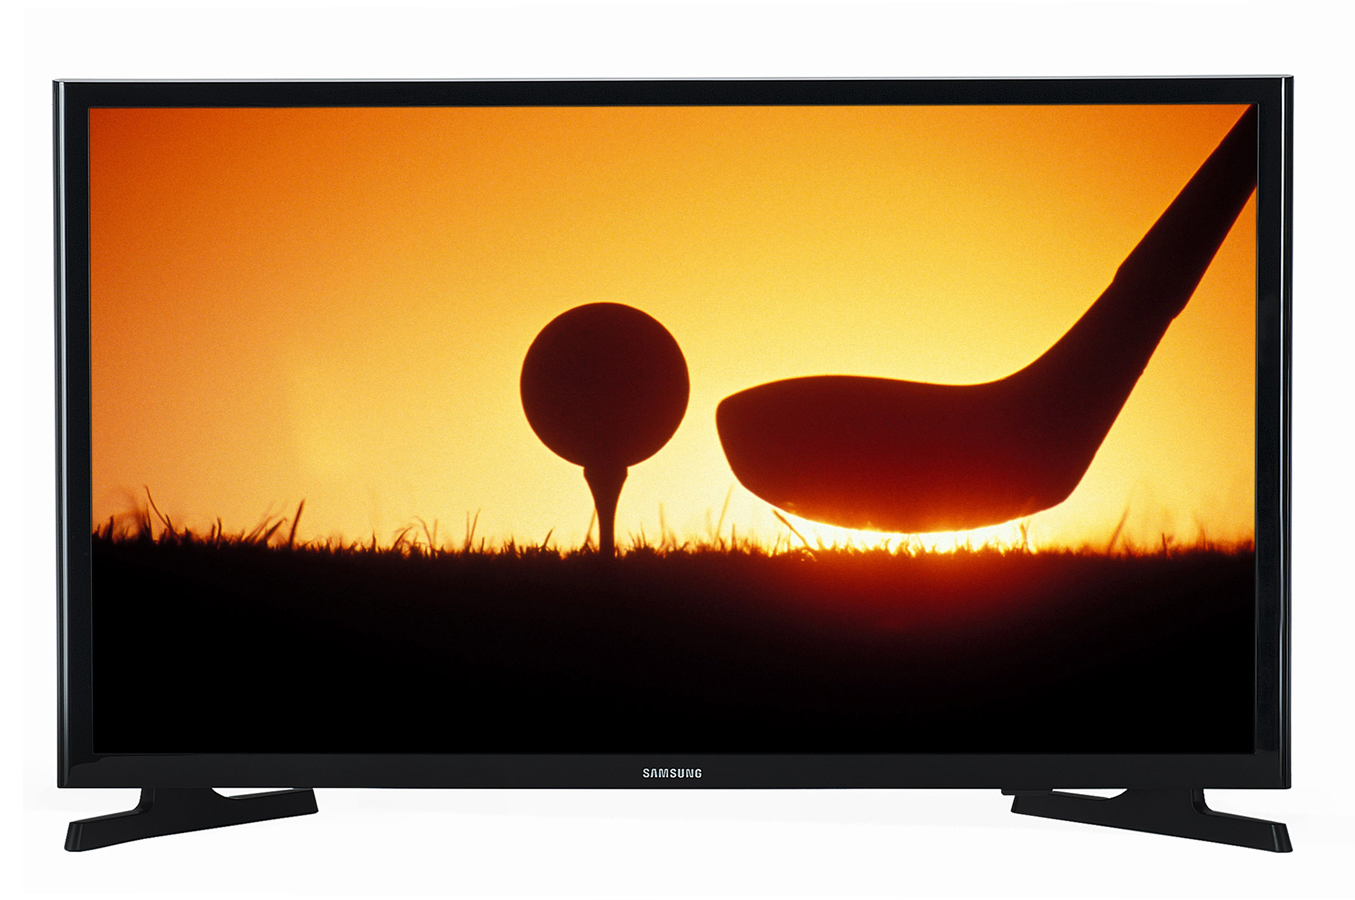 tv samsung 80cm full hd led garantie 2 ans top. Black Bedroom Furniture Sets. Home Design Ideas